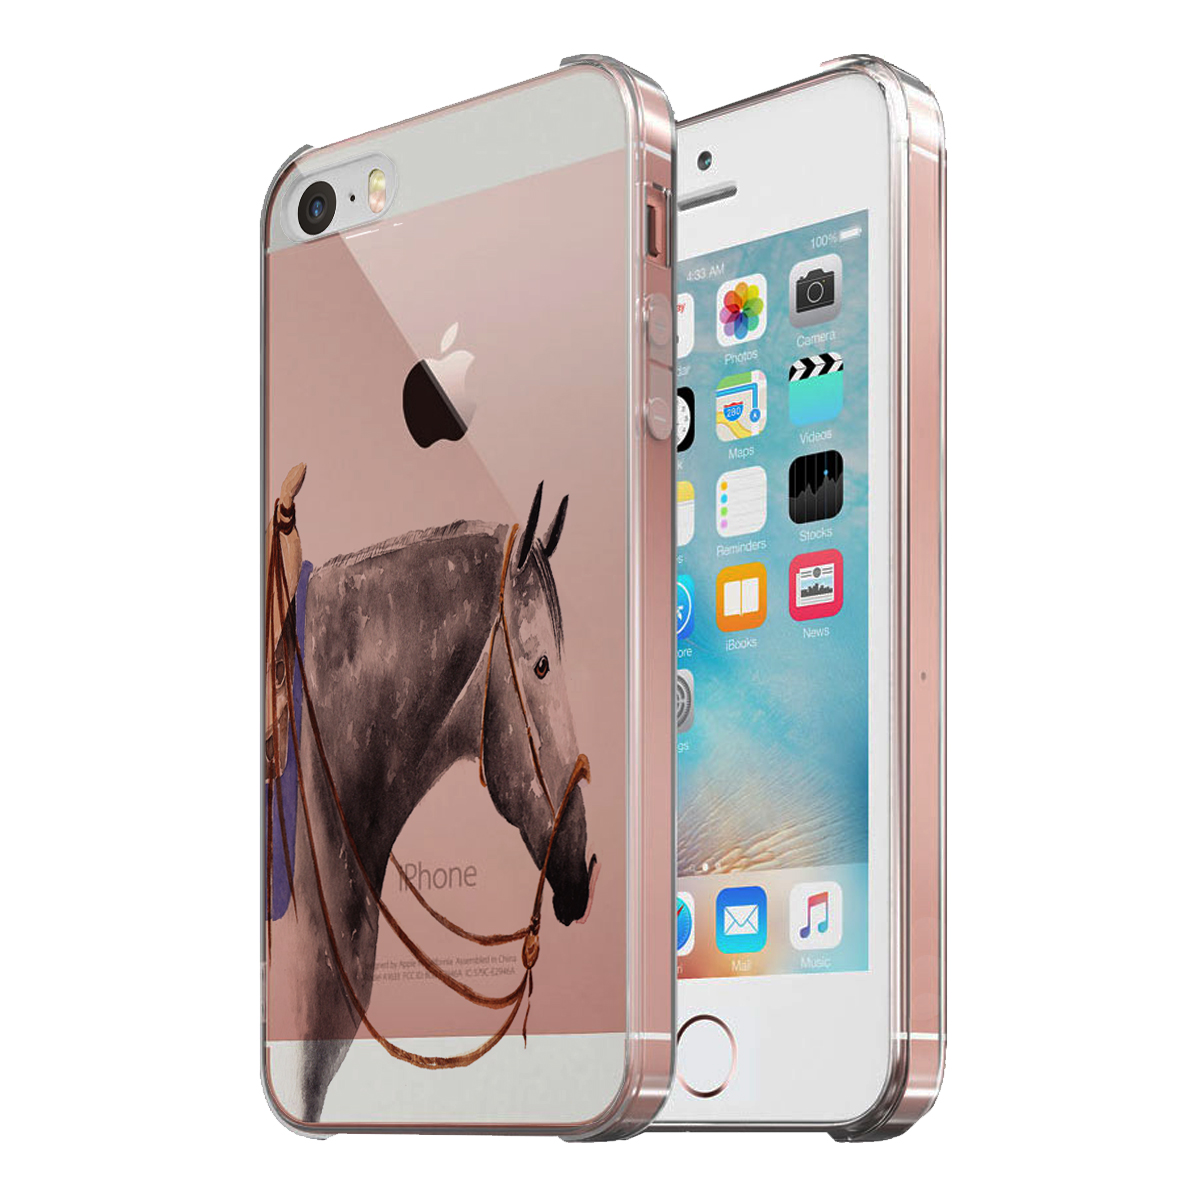 KuzmarK Clear Cover Case fits iPhone SE & iPhone 5 - Dappled Gray Quarter Horse Art by Denise Every